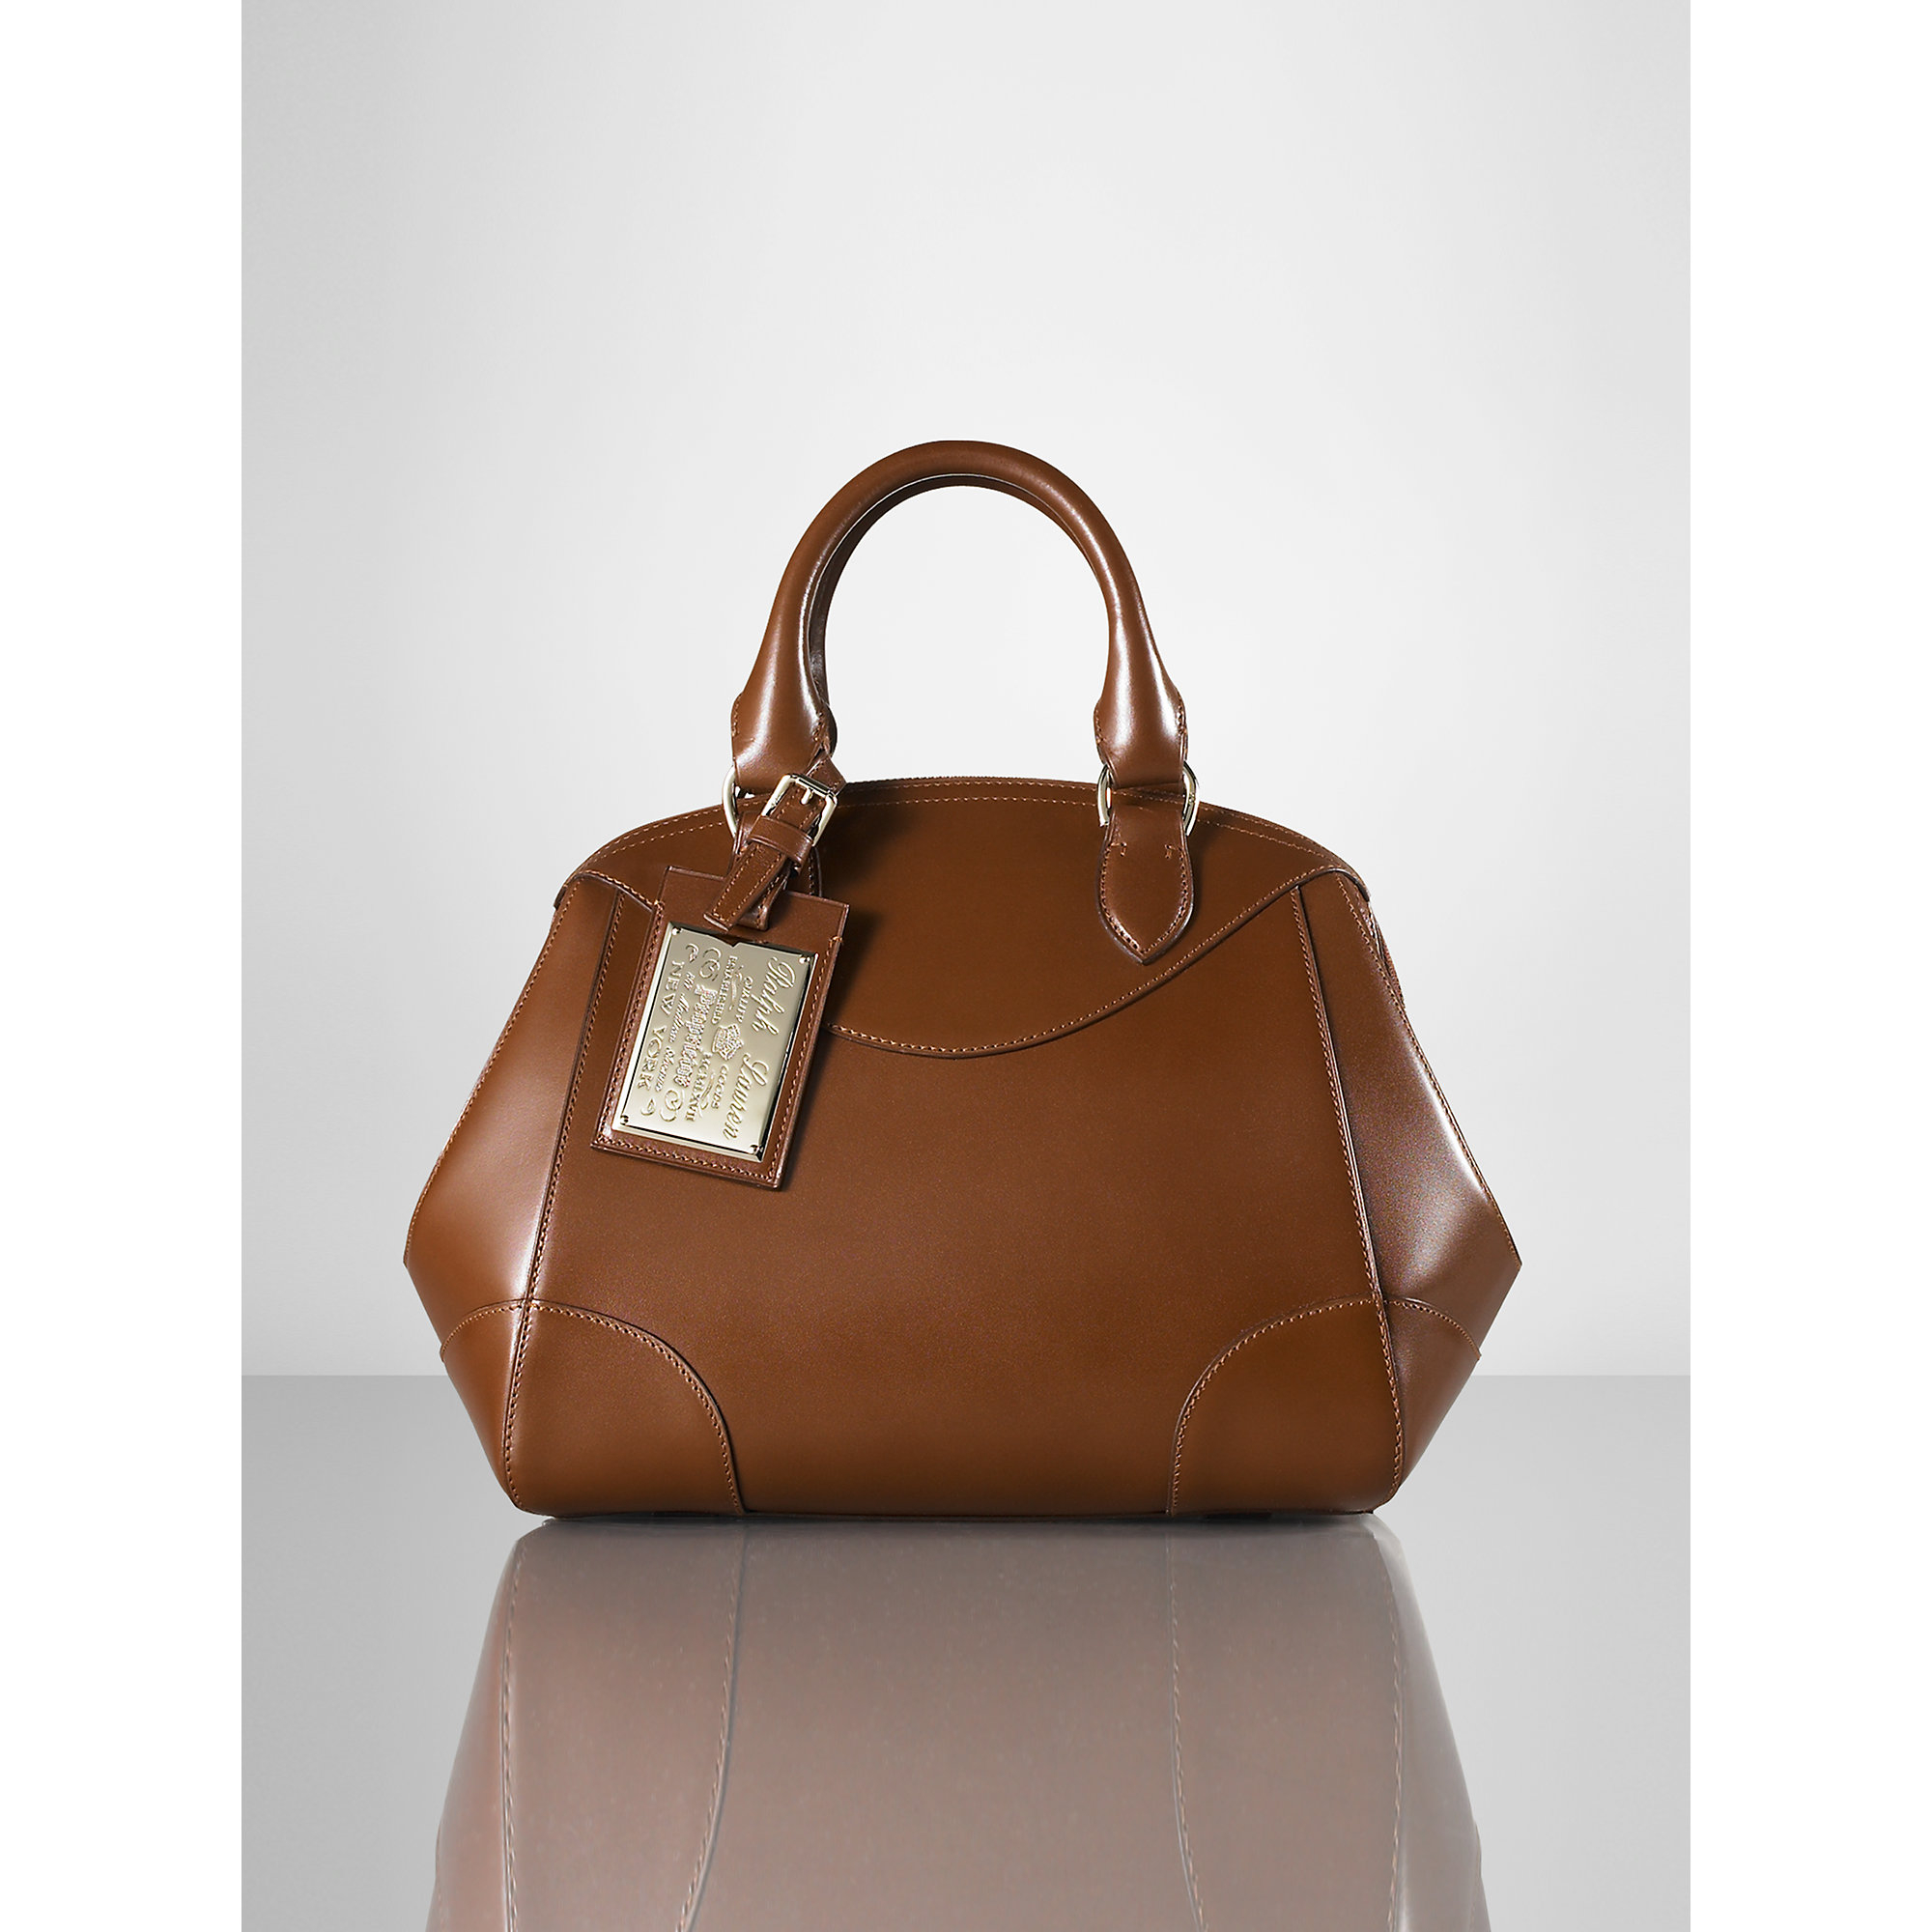 c57238529e ... spain lyst ralph lauren small bedford bag in brown f0024 e7df3